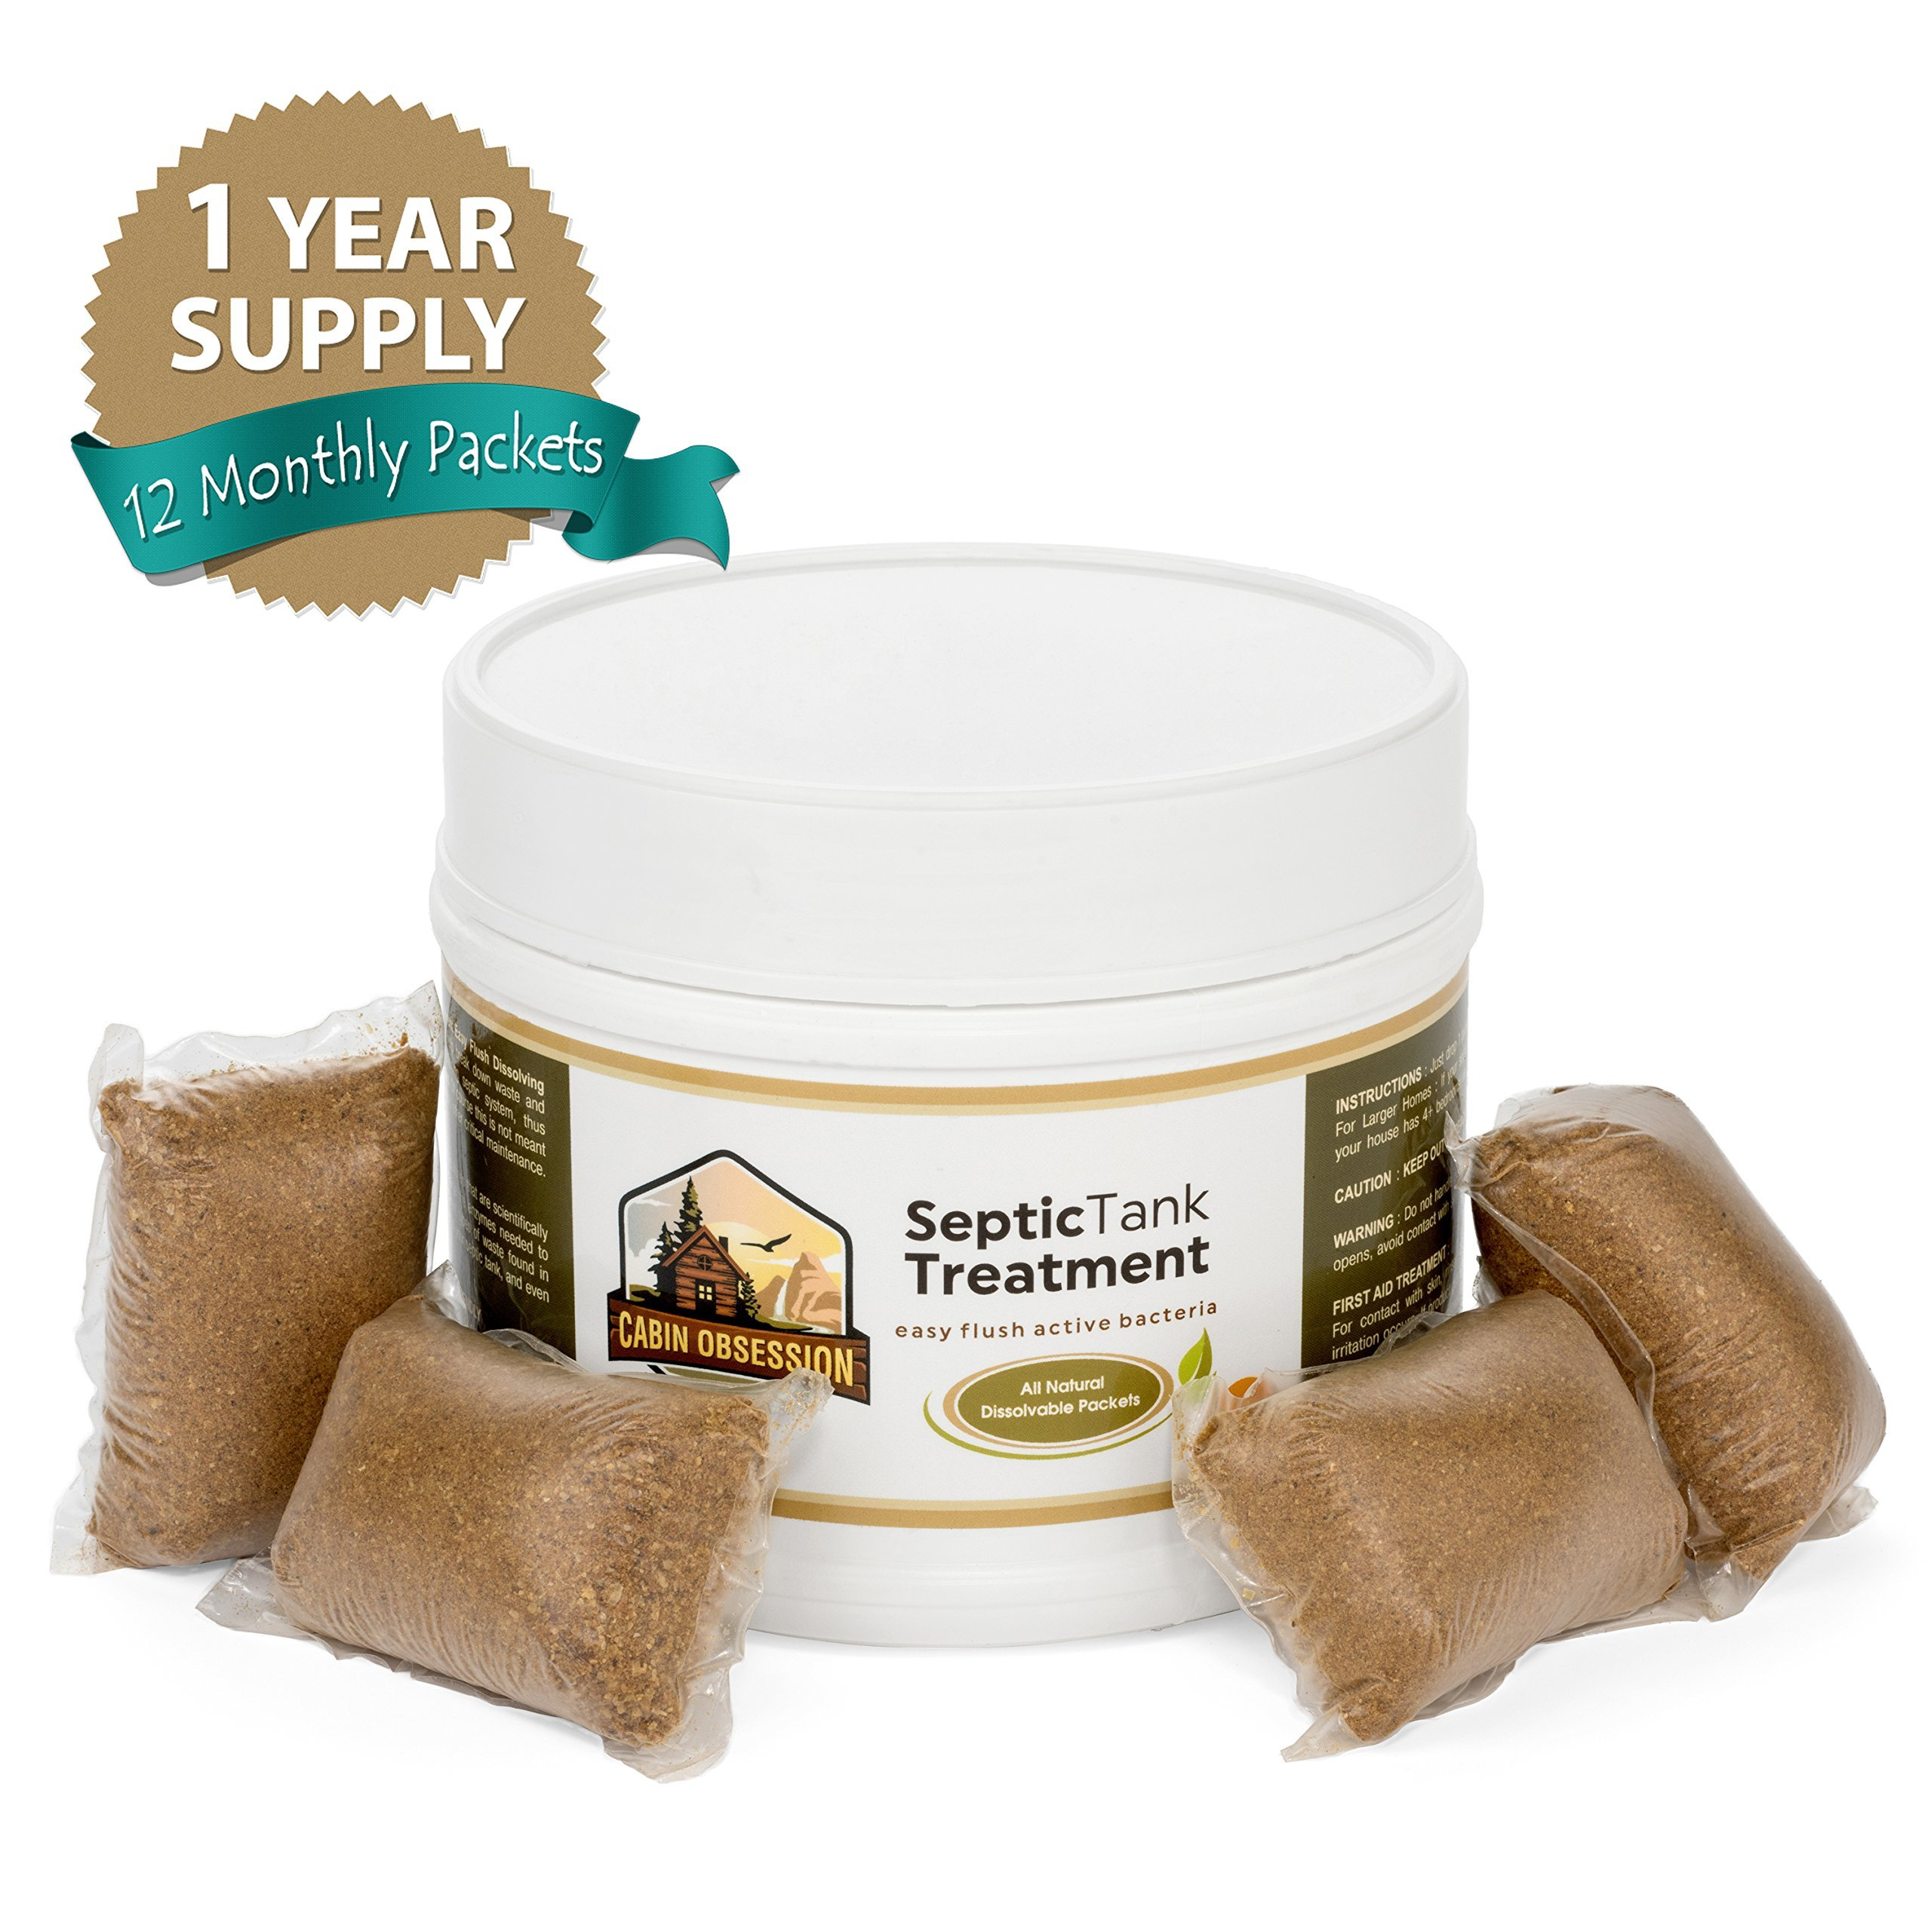 Septic Tank Treatment - 1 Year Supply of Dissolvable Easy Flush Live Bacteria Packets (12 Count) - Best Way to Prevent Expensive Sewage Backups - Made in USA by Septic Treatment by Cabin Obsession (Image #8)